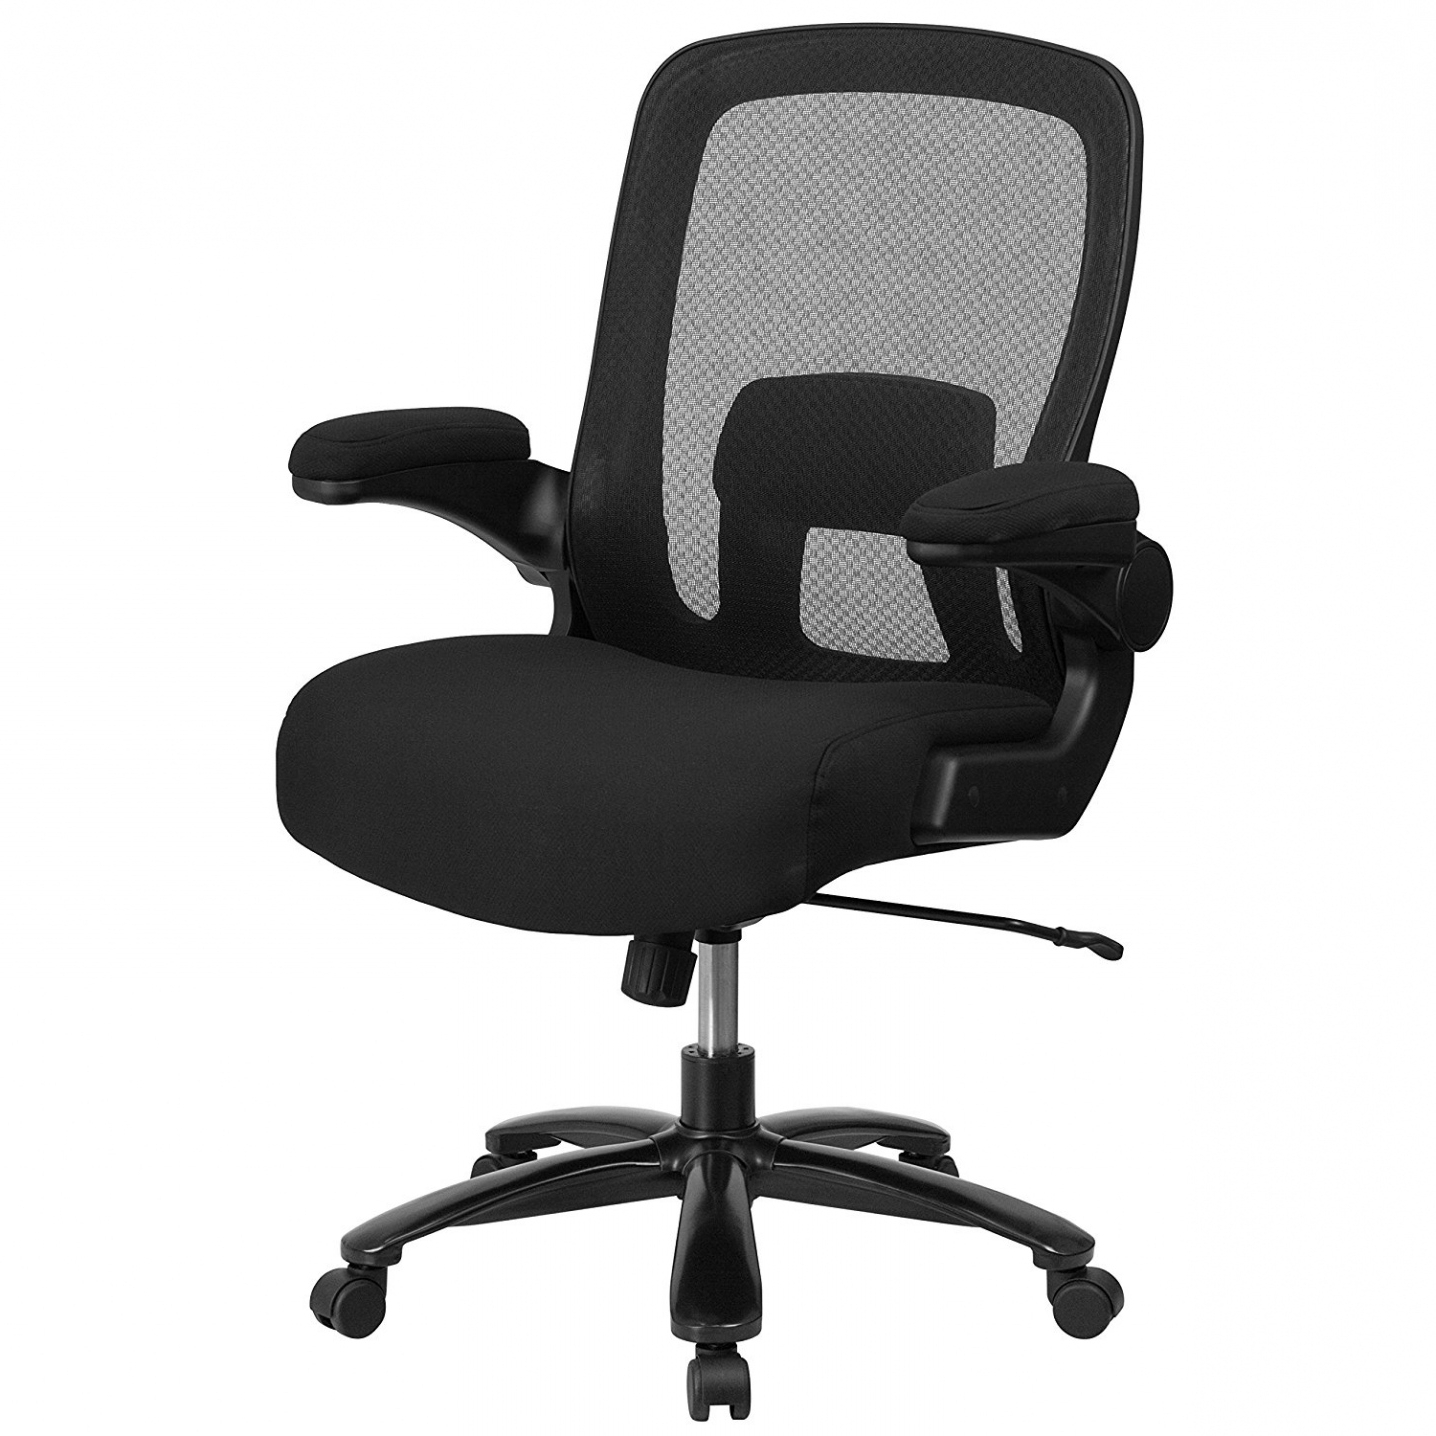 Office Chair With Adjustable Lumbar Support – Organization Ideas Intended For Current Executive Office Chairs With Adjustable Lumbar Support (View 11 of 20)